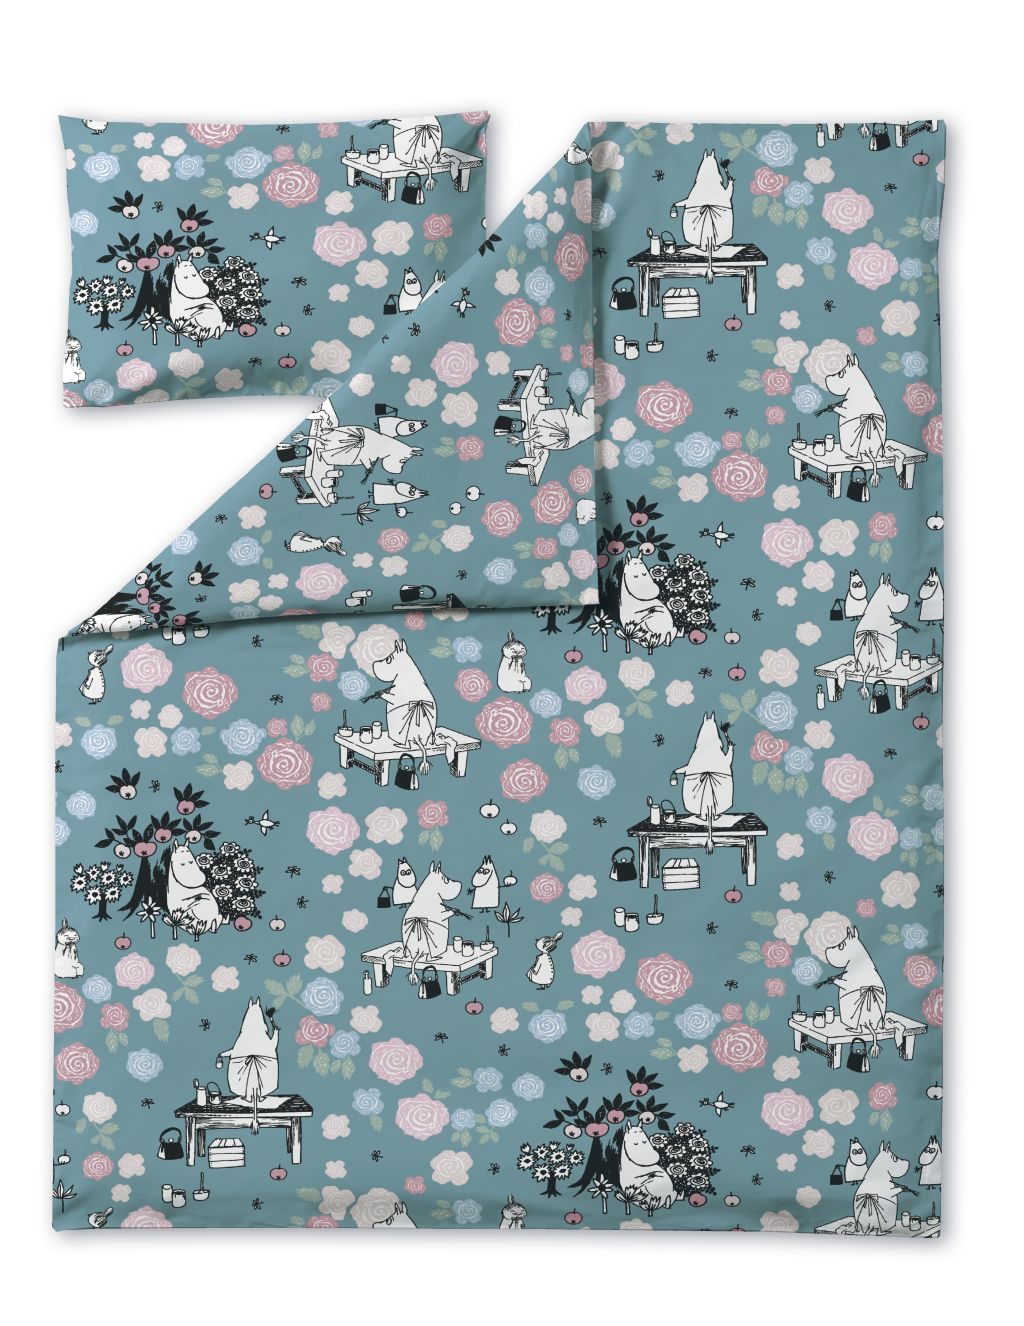 Finlayson Moominmamma is Daydreaming Duvet Cover Set for Children